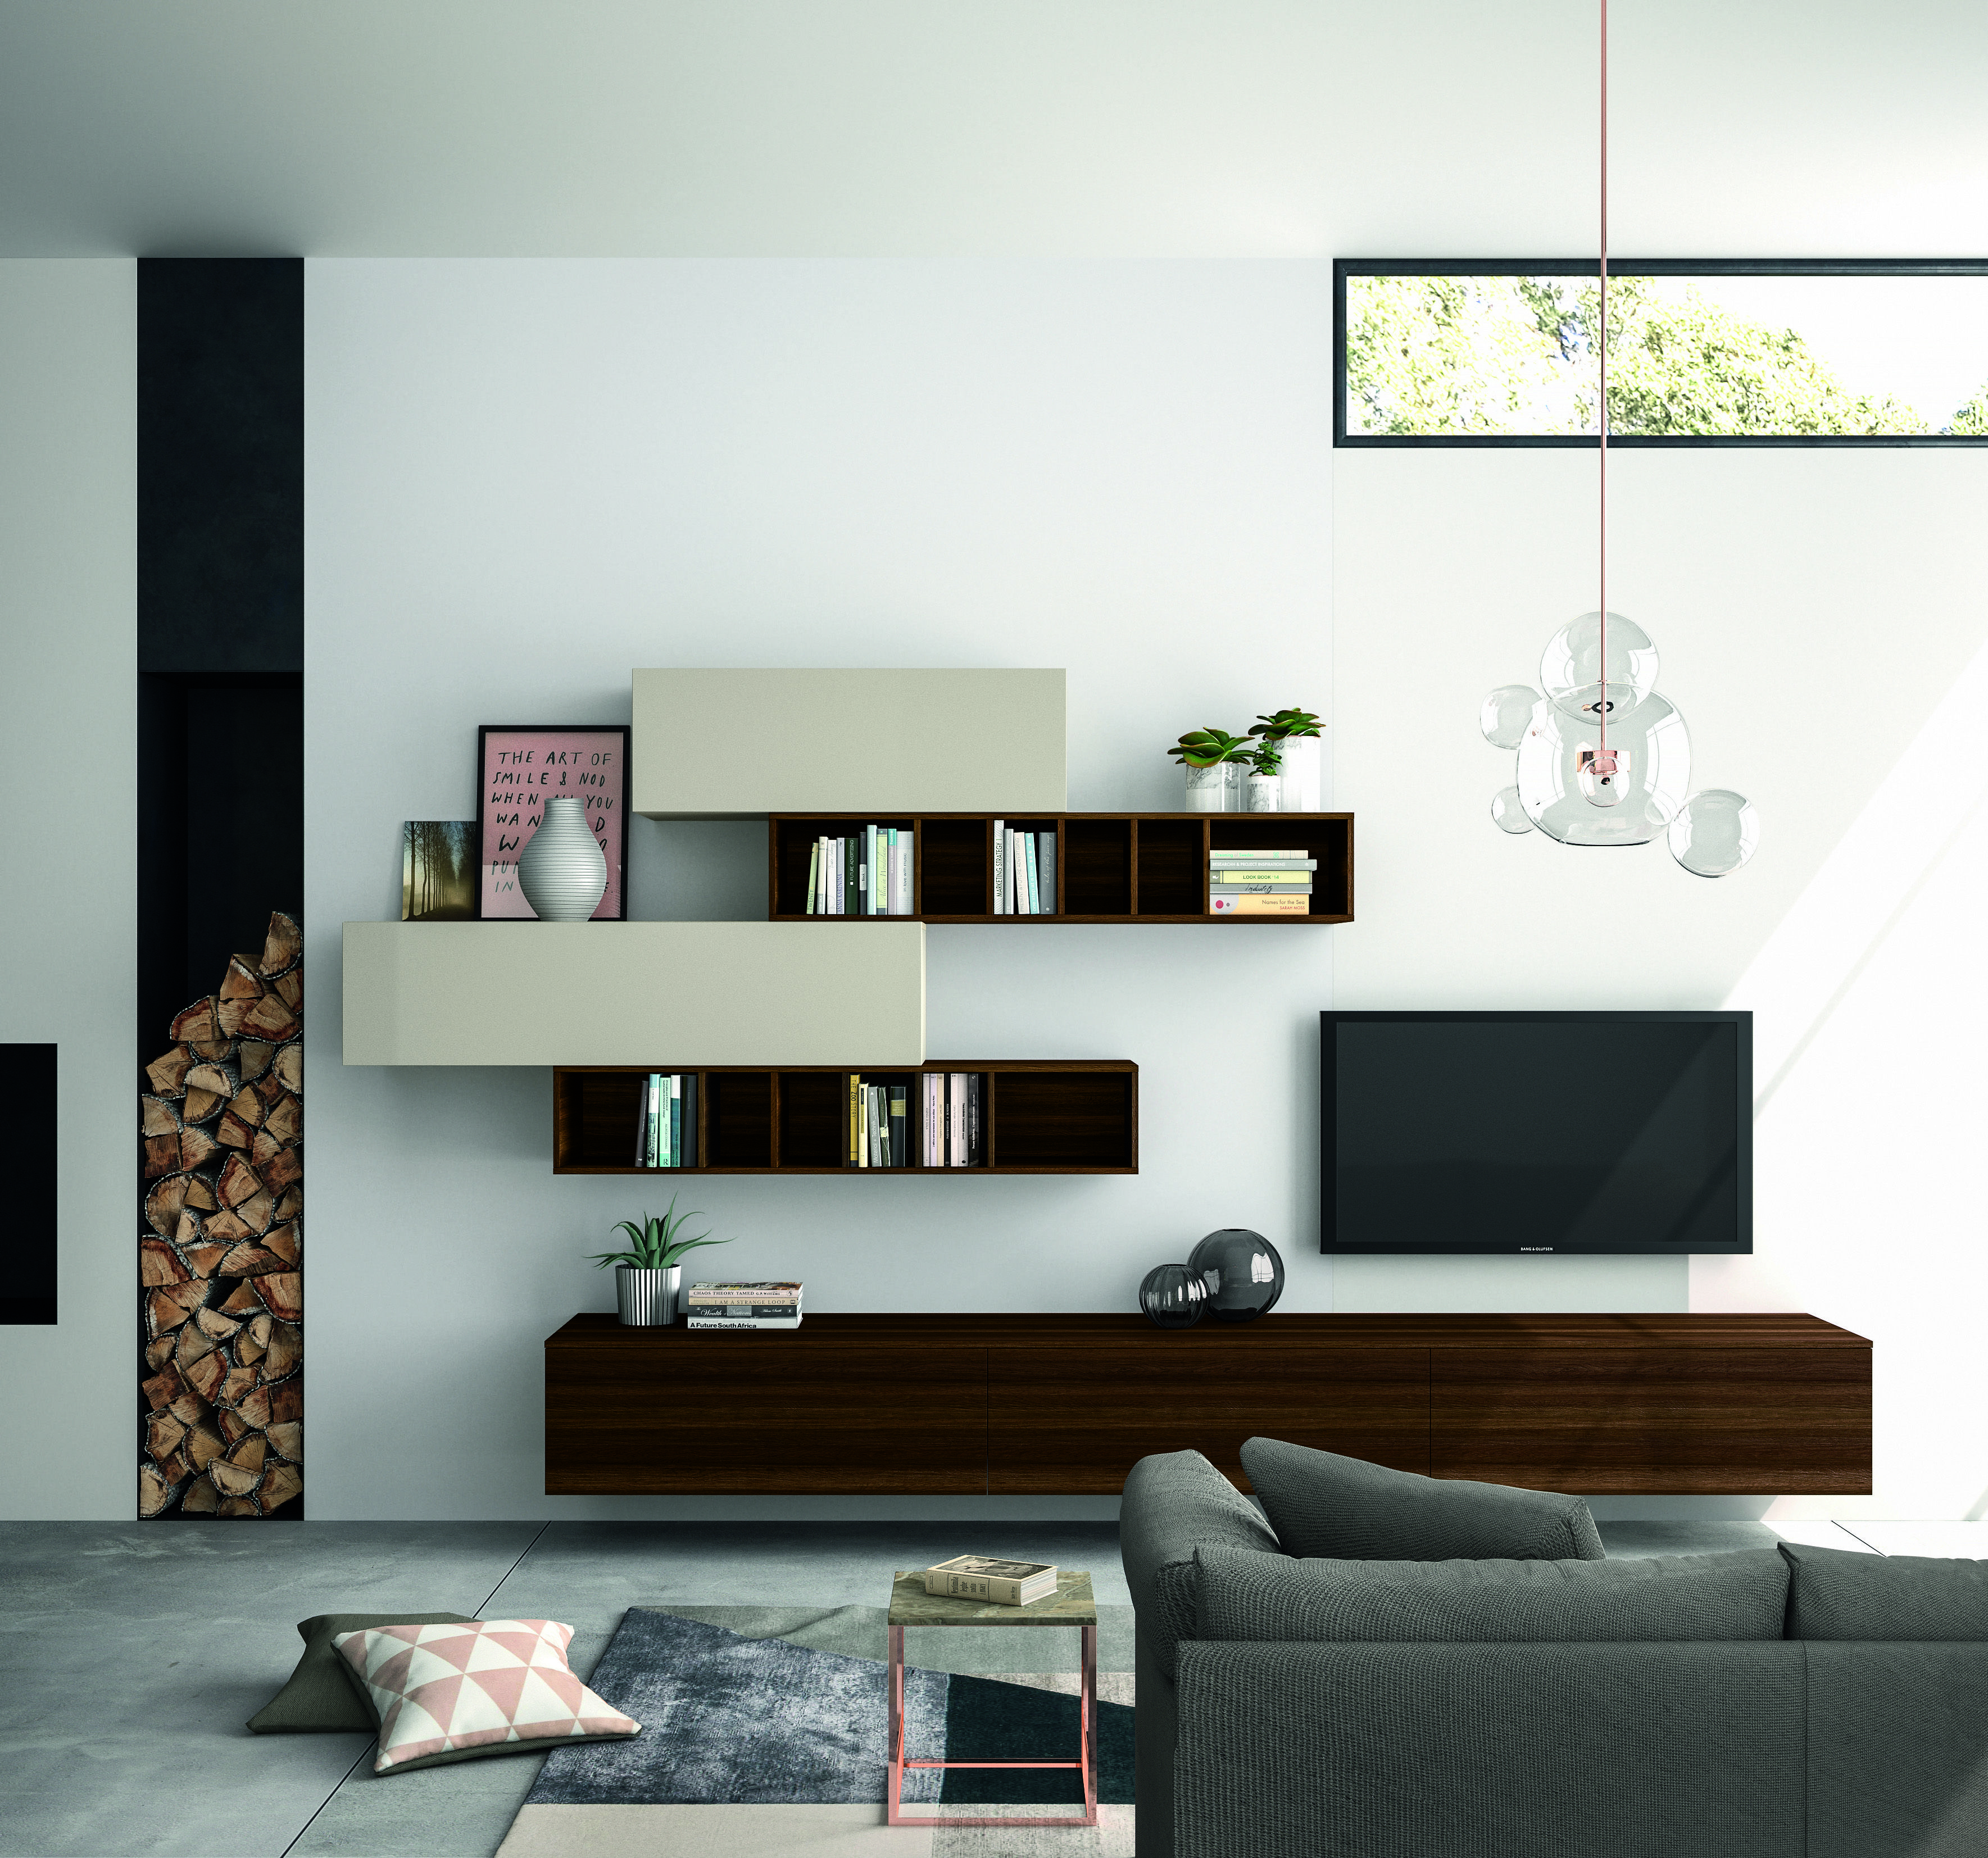 Up on the design blog inspiring storage u cabinetry ideas for the